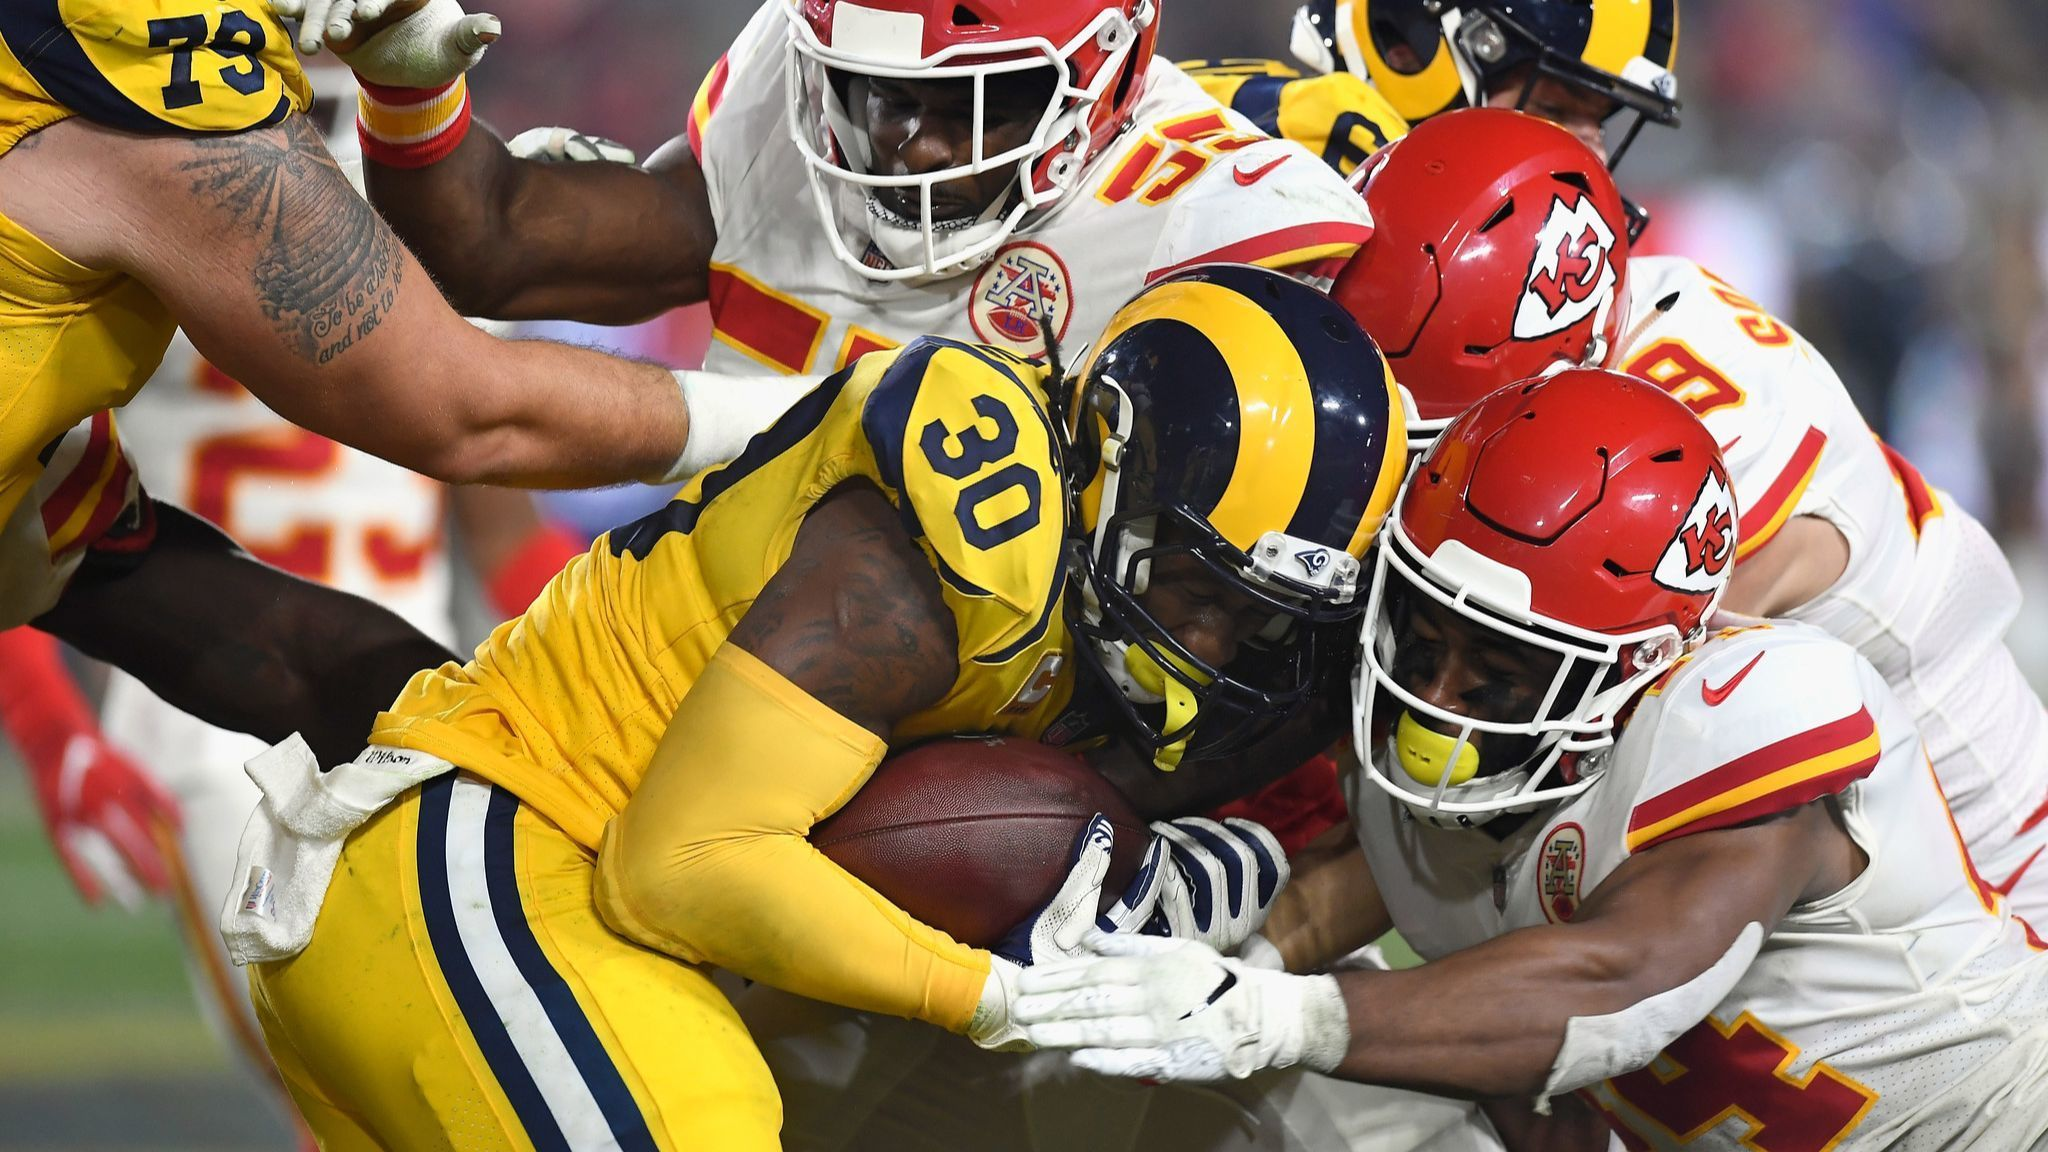 Todd Gurley's quiet night included a mildly sprained ankle